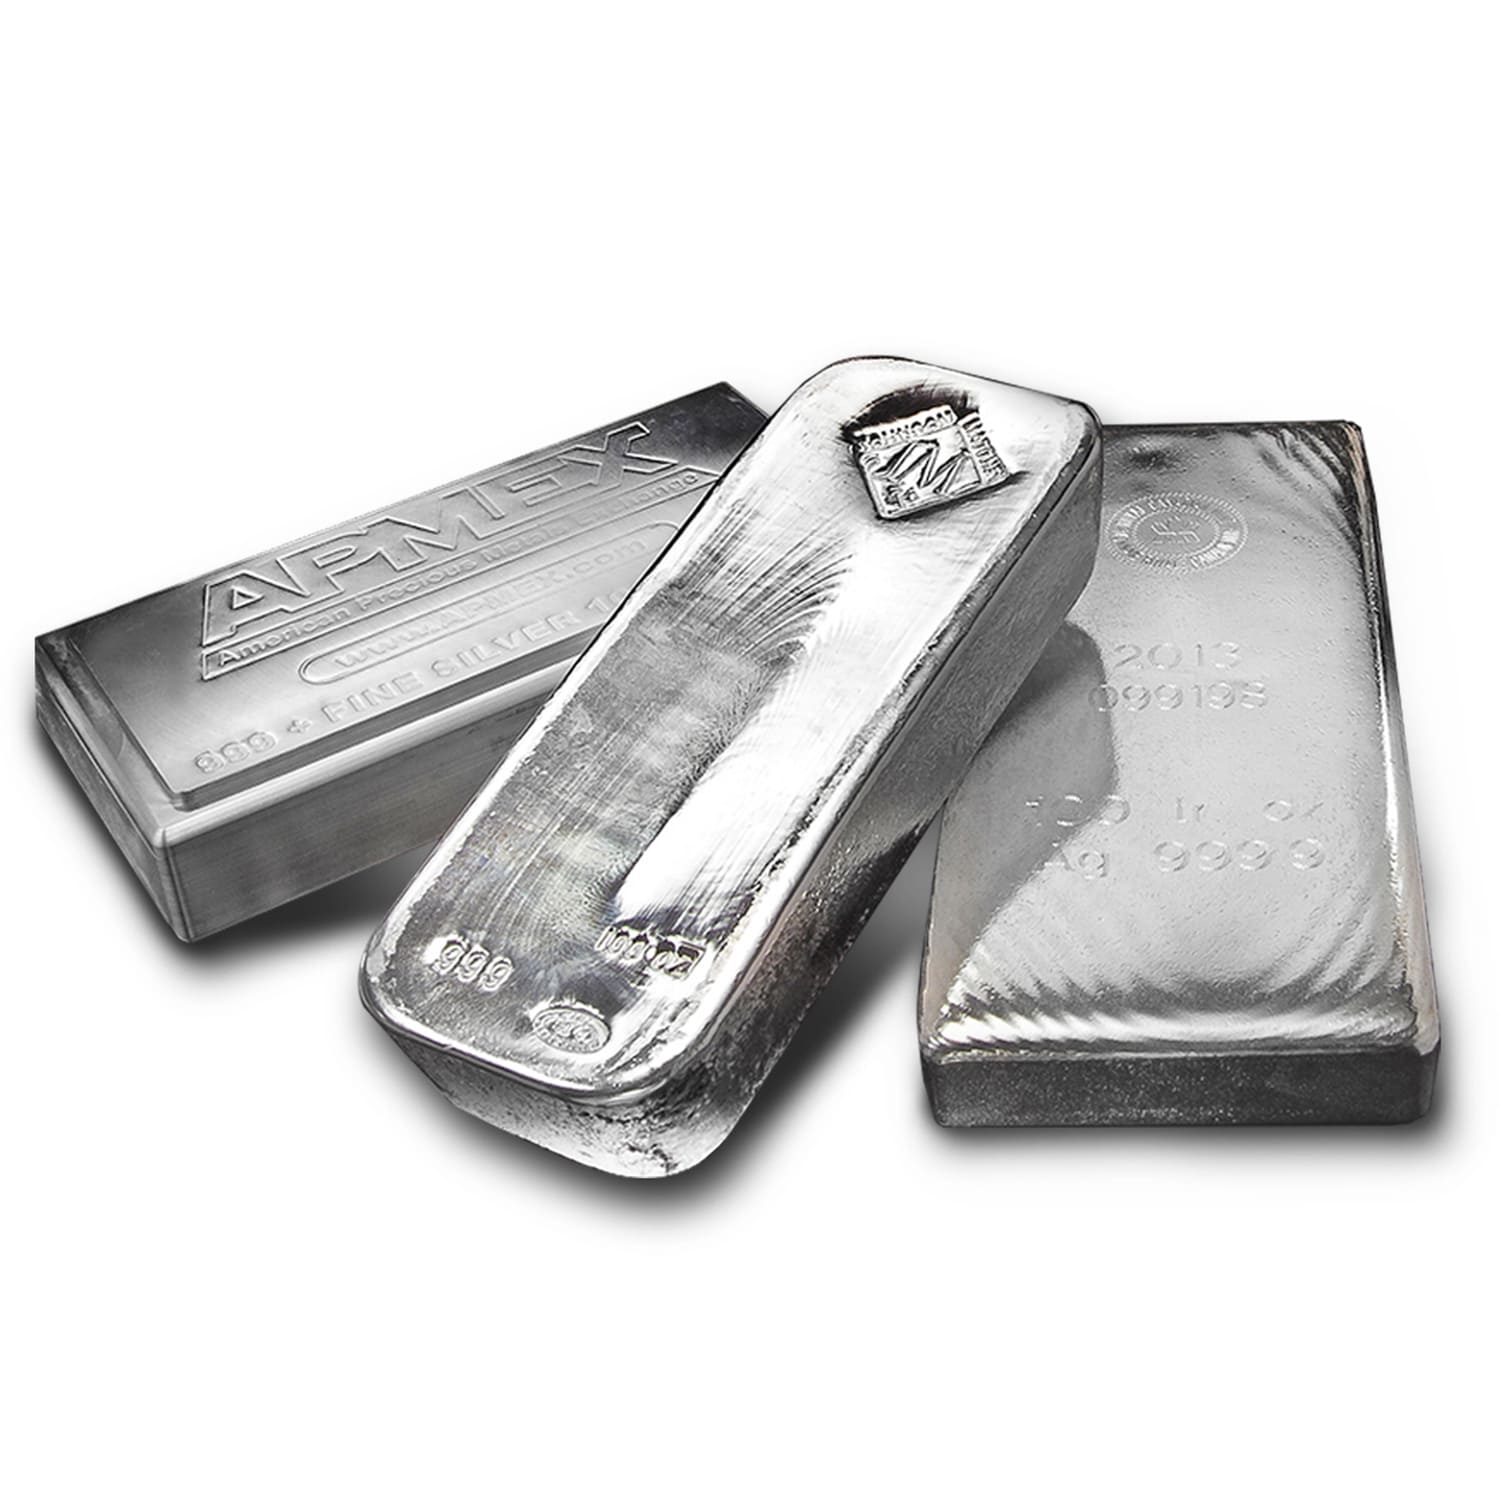 98.80 oz Silver Bar - Secondary Market